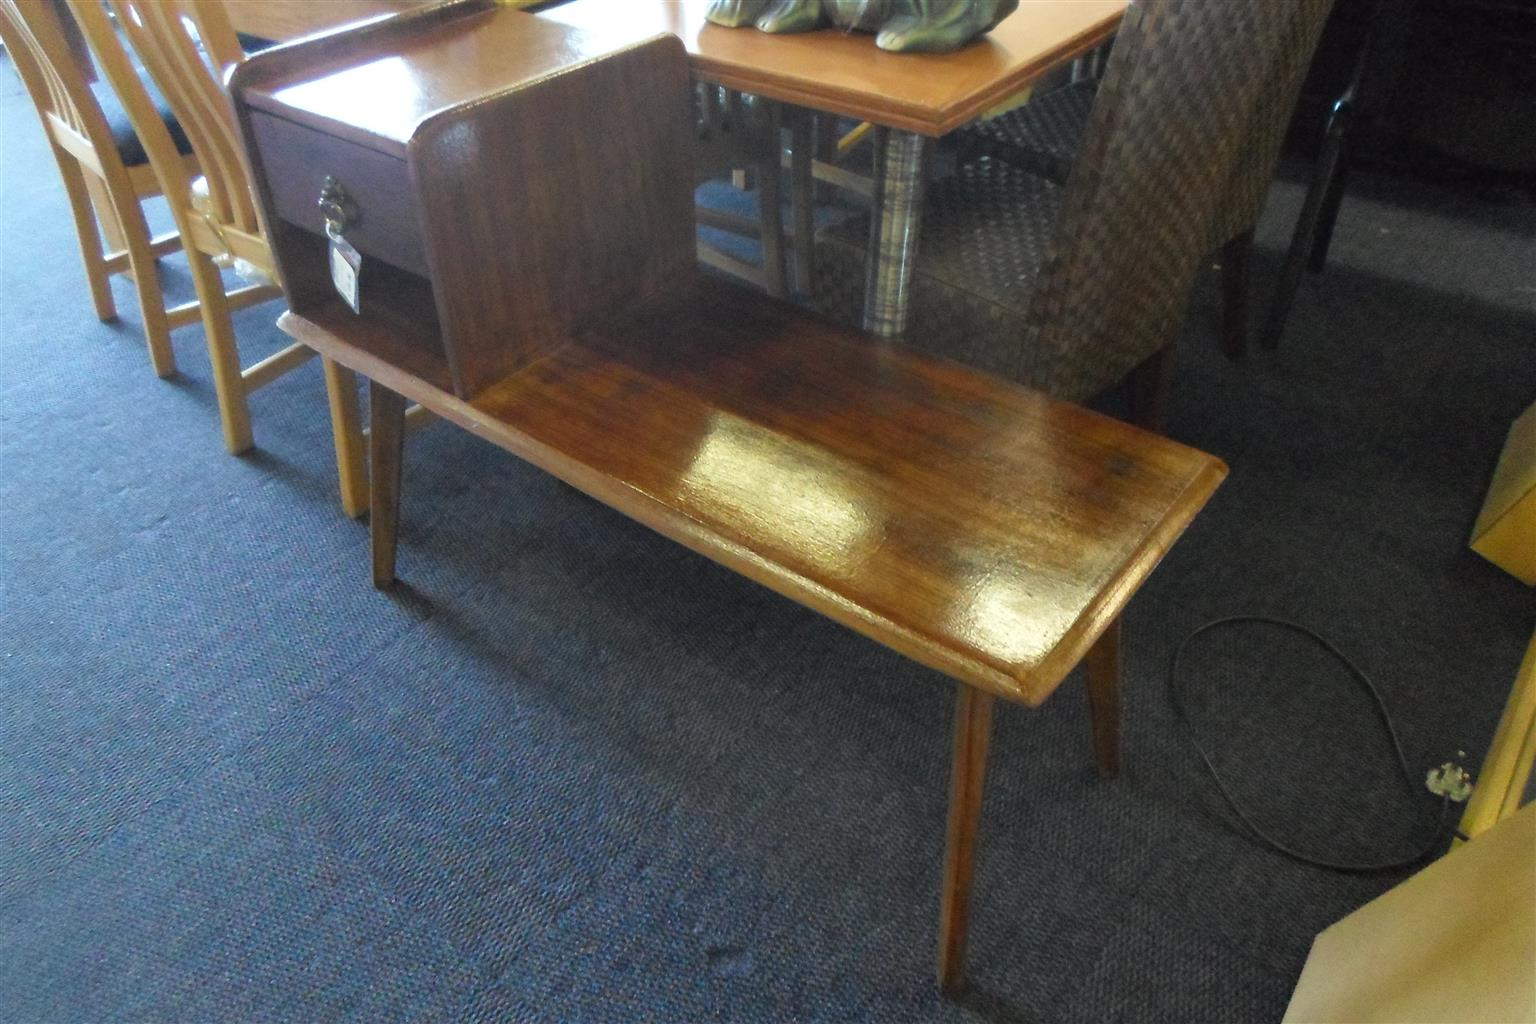 Wooden Telephone Table - B033037924-1